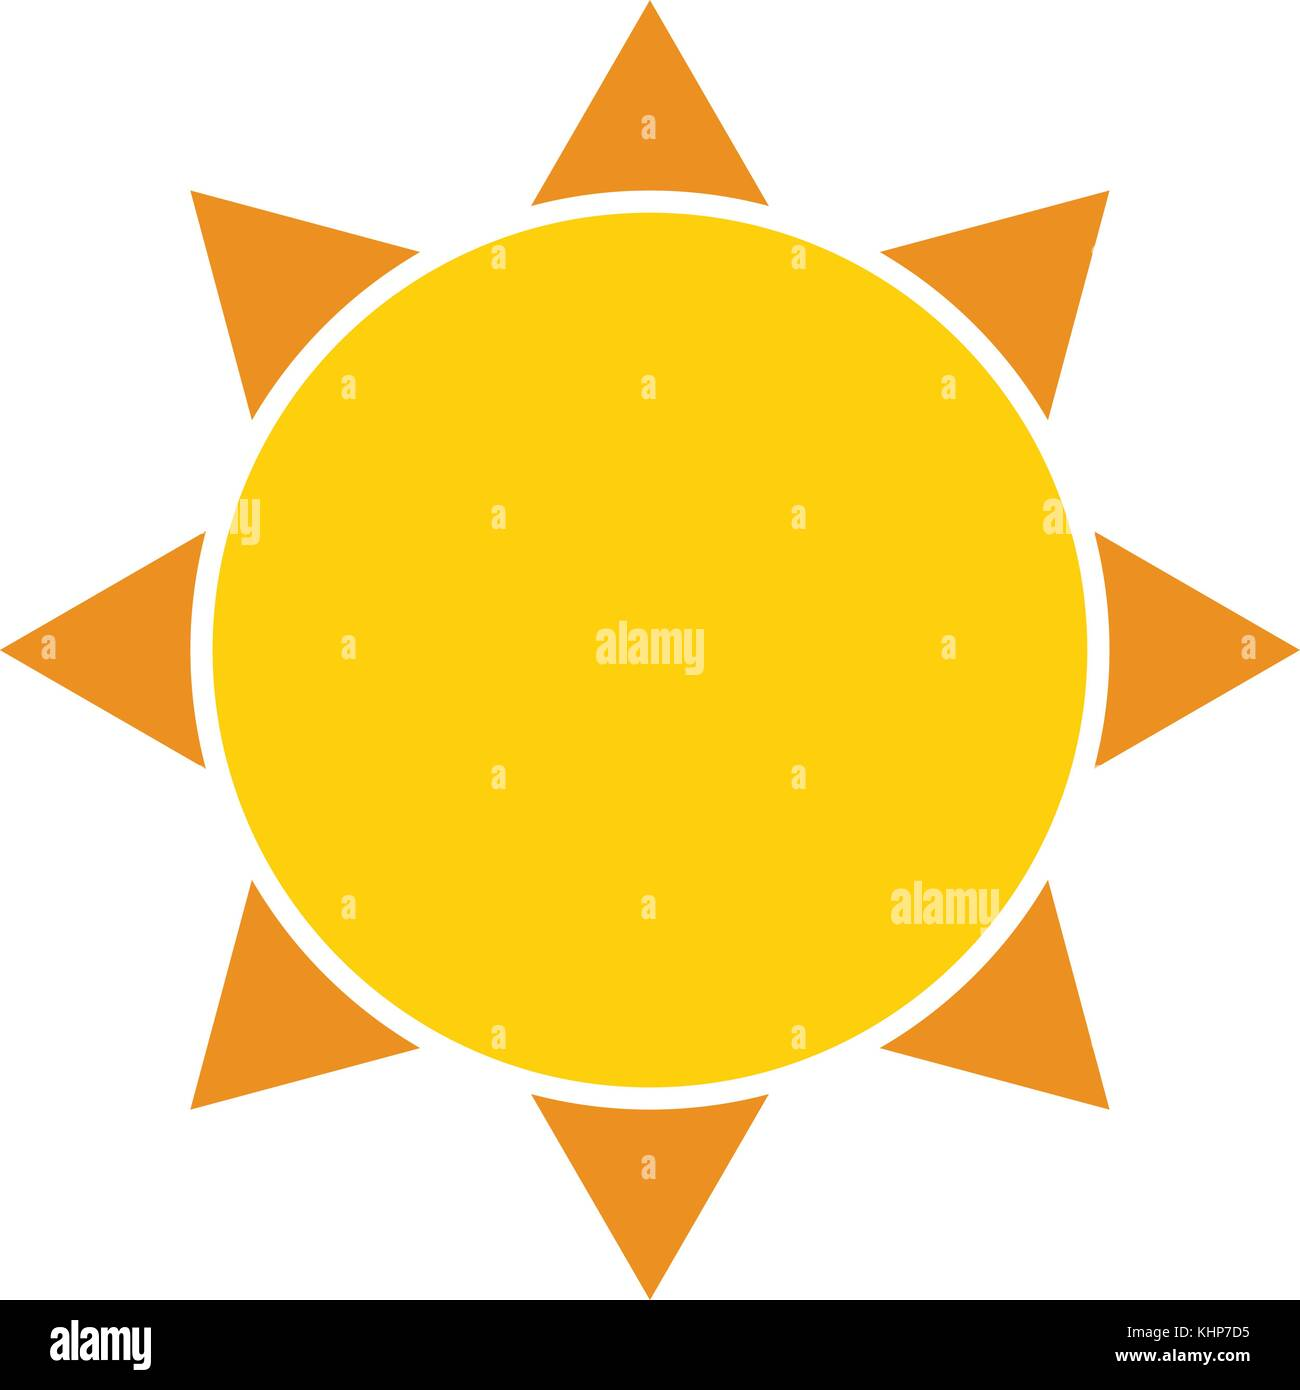 A stylised graphic of the sun for use as a logo - Stock Vector